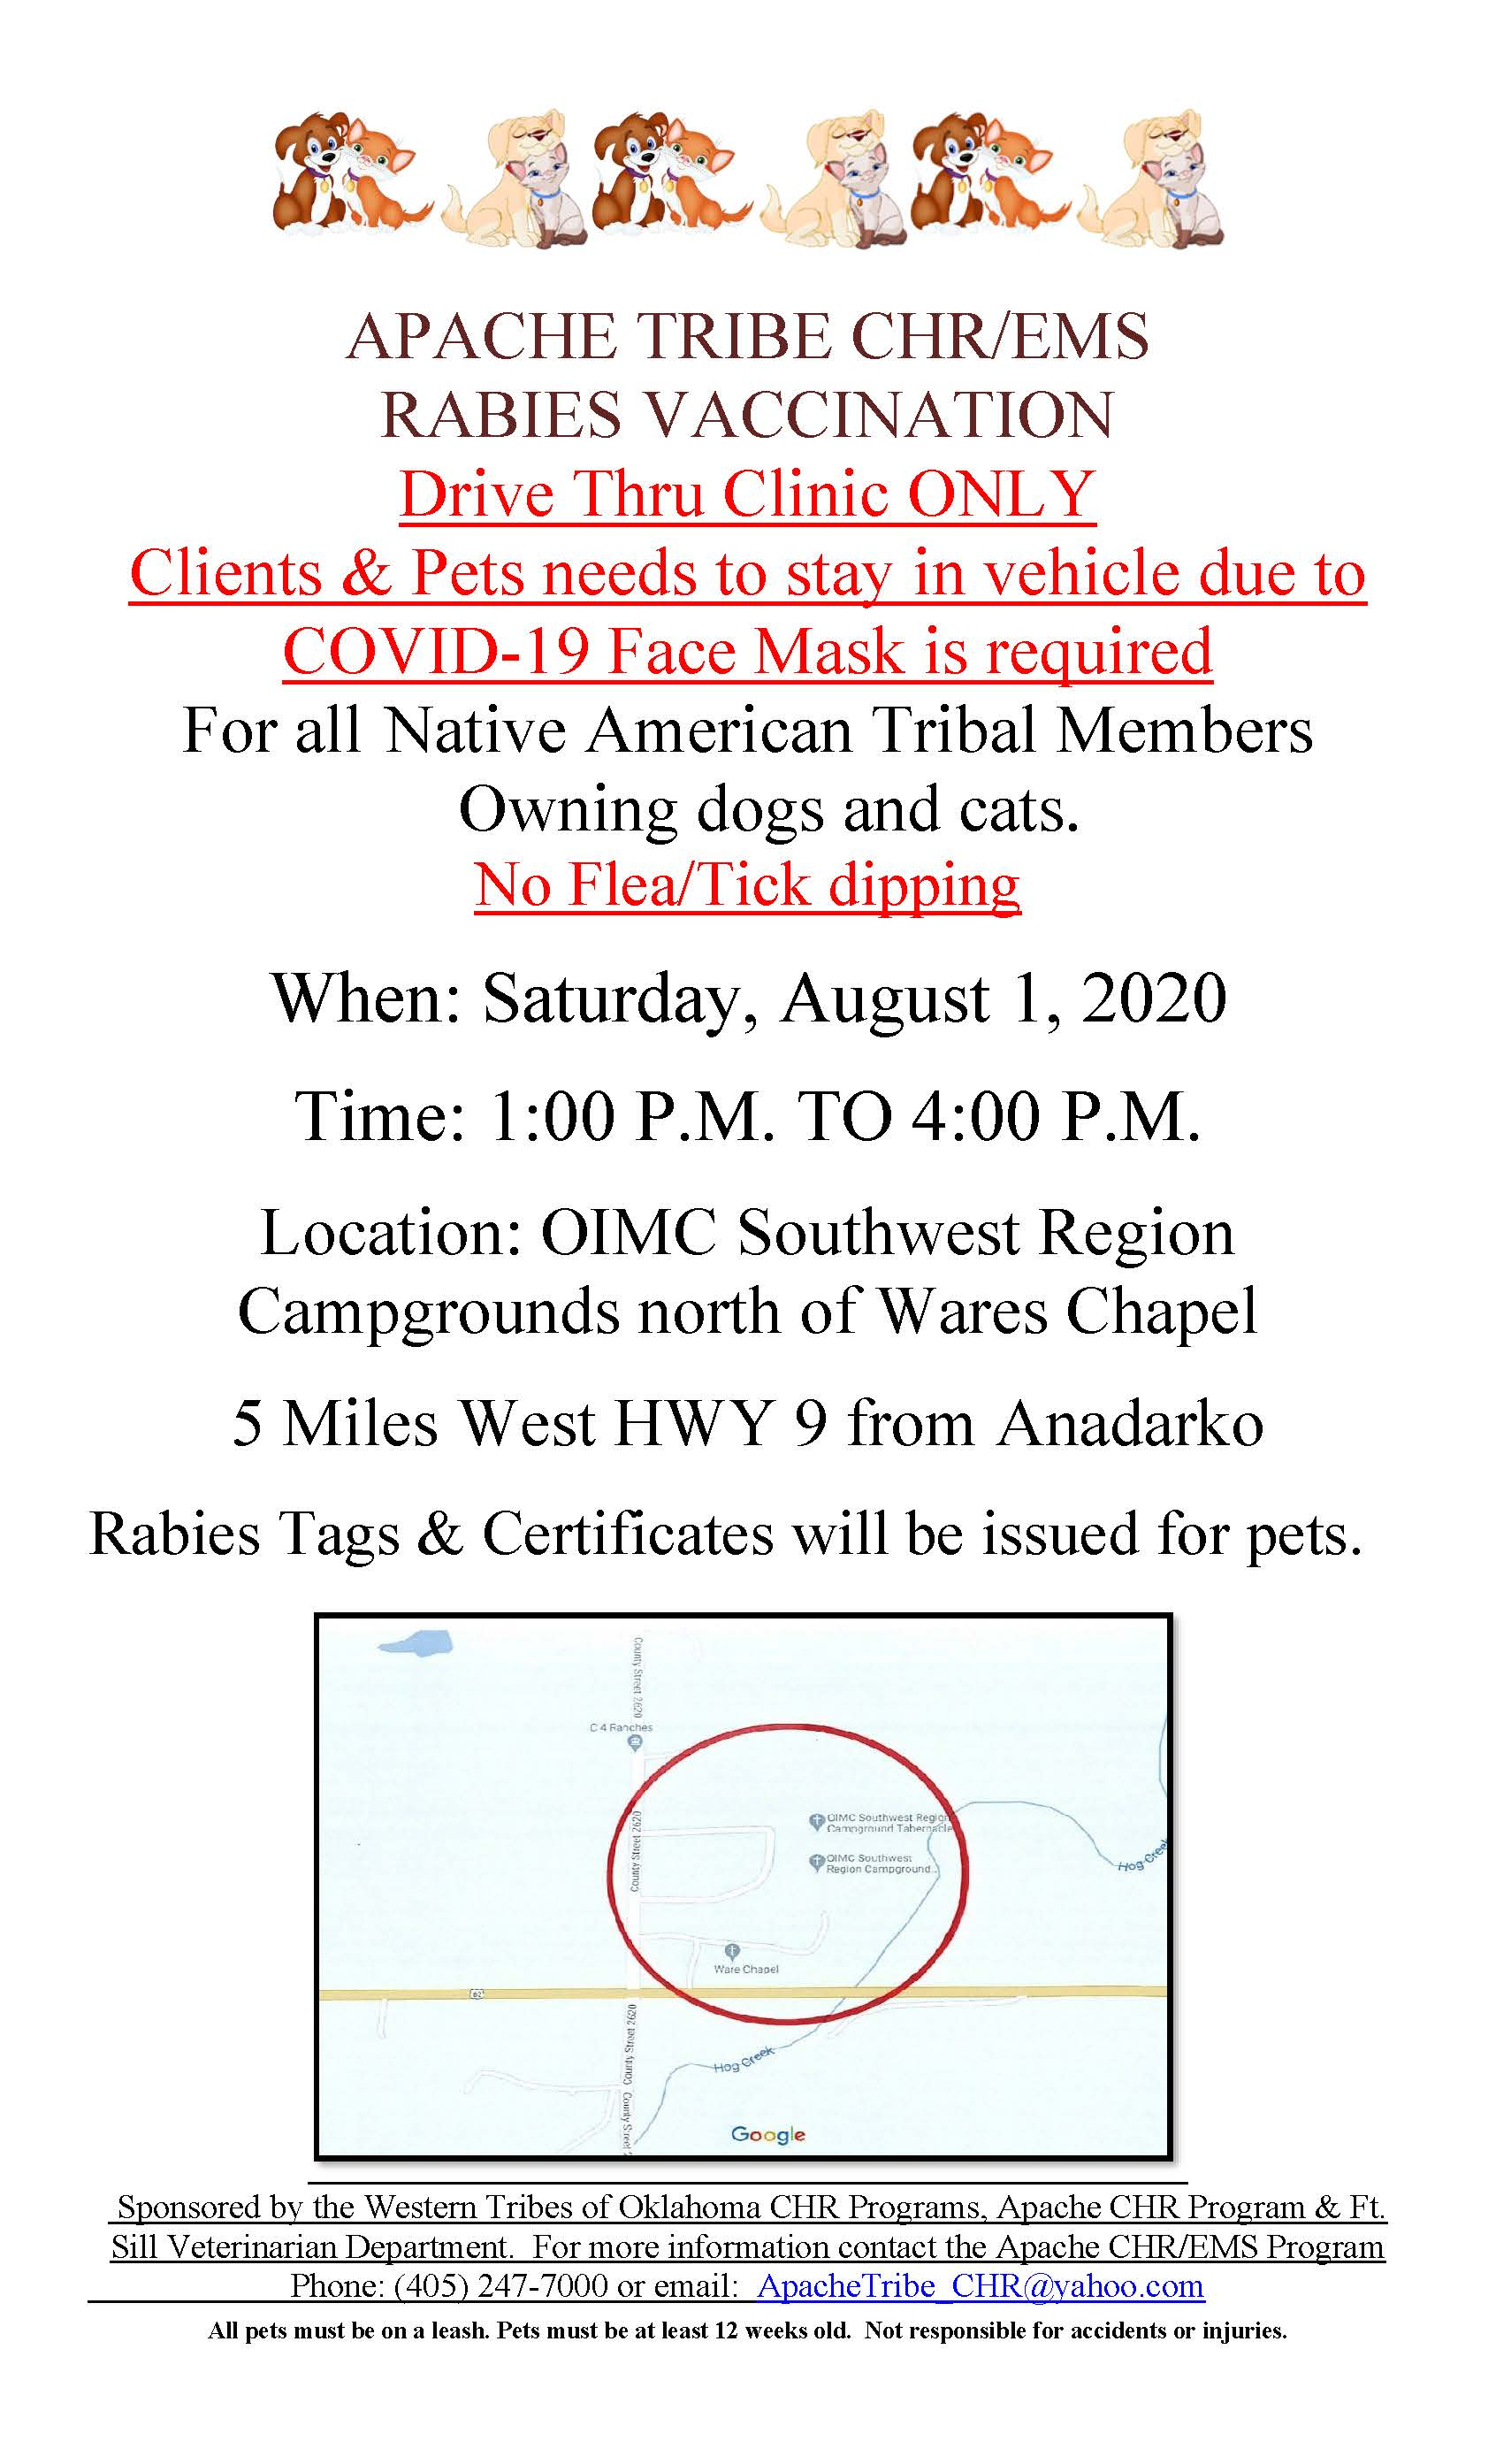 Rabies Clinic Saturday August 1st 1 PM to 4 PM